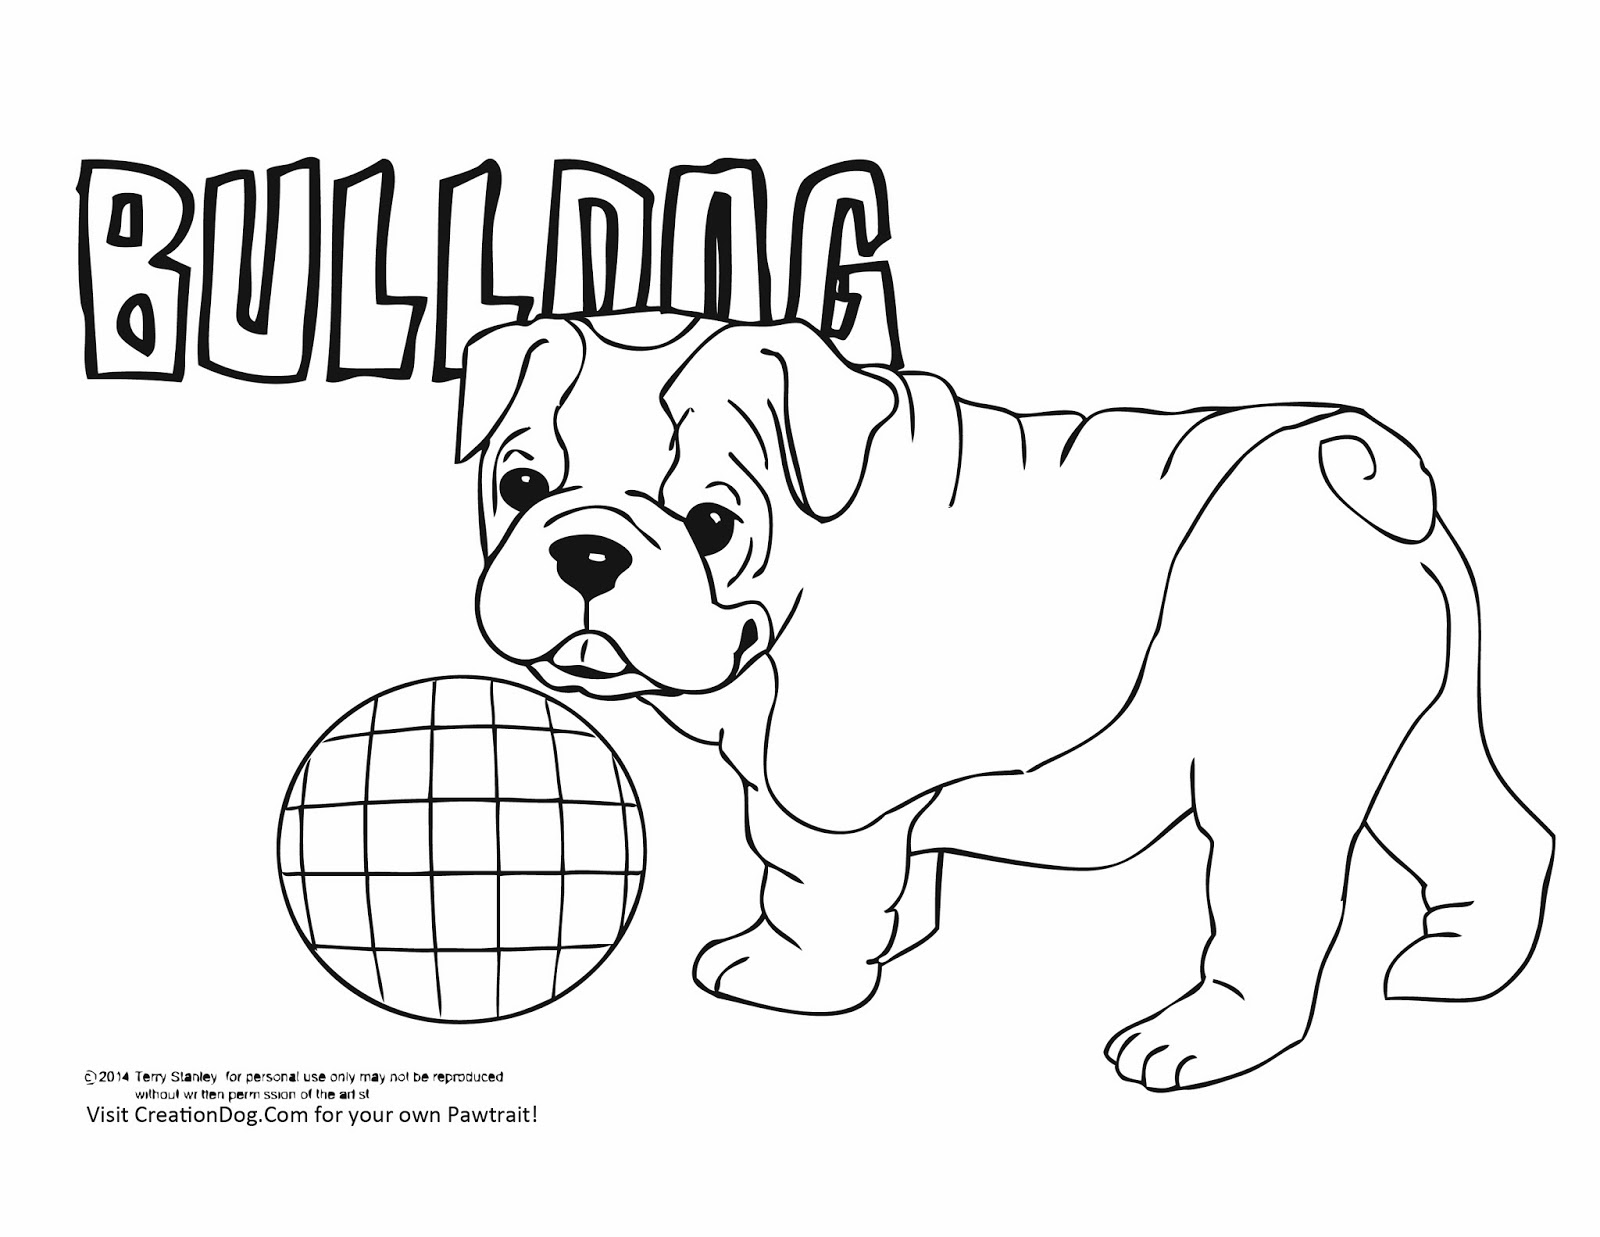 unicorn dog coloring pages printable unicorn coloring page in 2020 unicorn coloring unicorn dog pages coloring